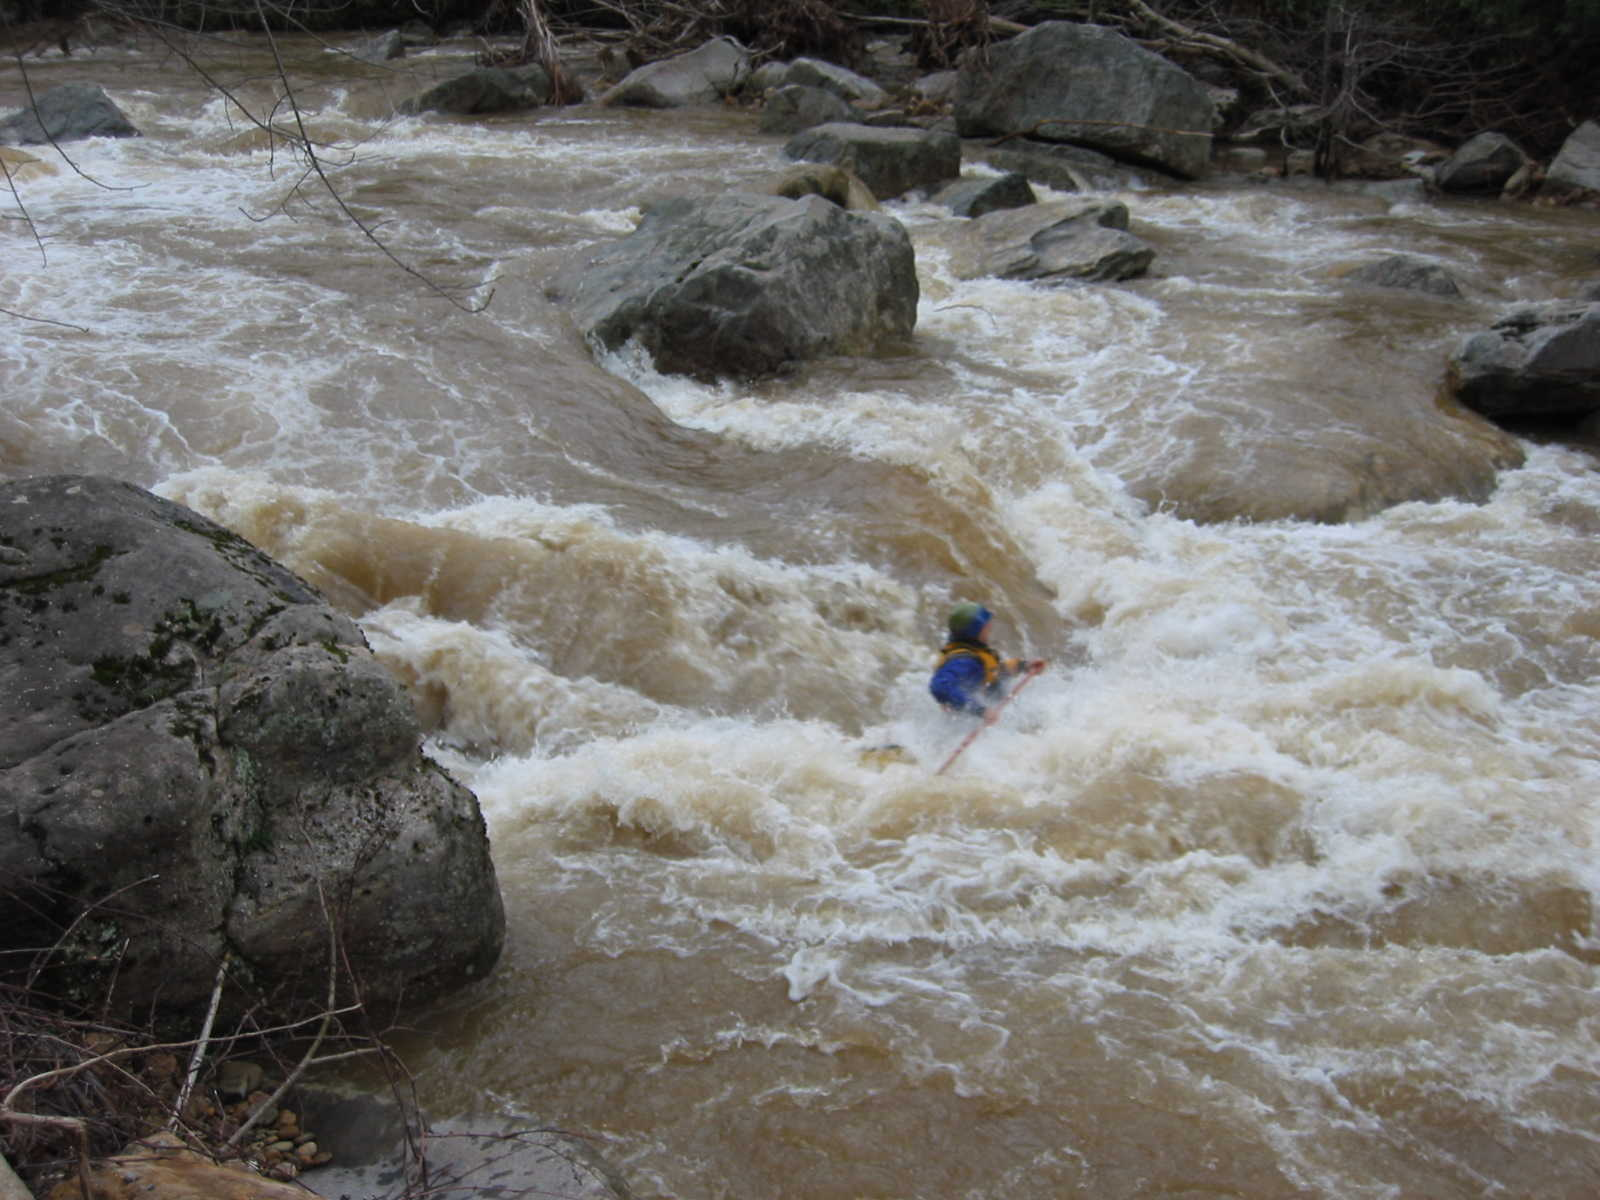 Jim Pruitt burying canoe in main hole of the big South Fork rapid (Photo by Lou Campagna - 4/26/04)